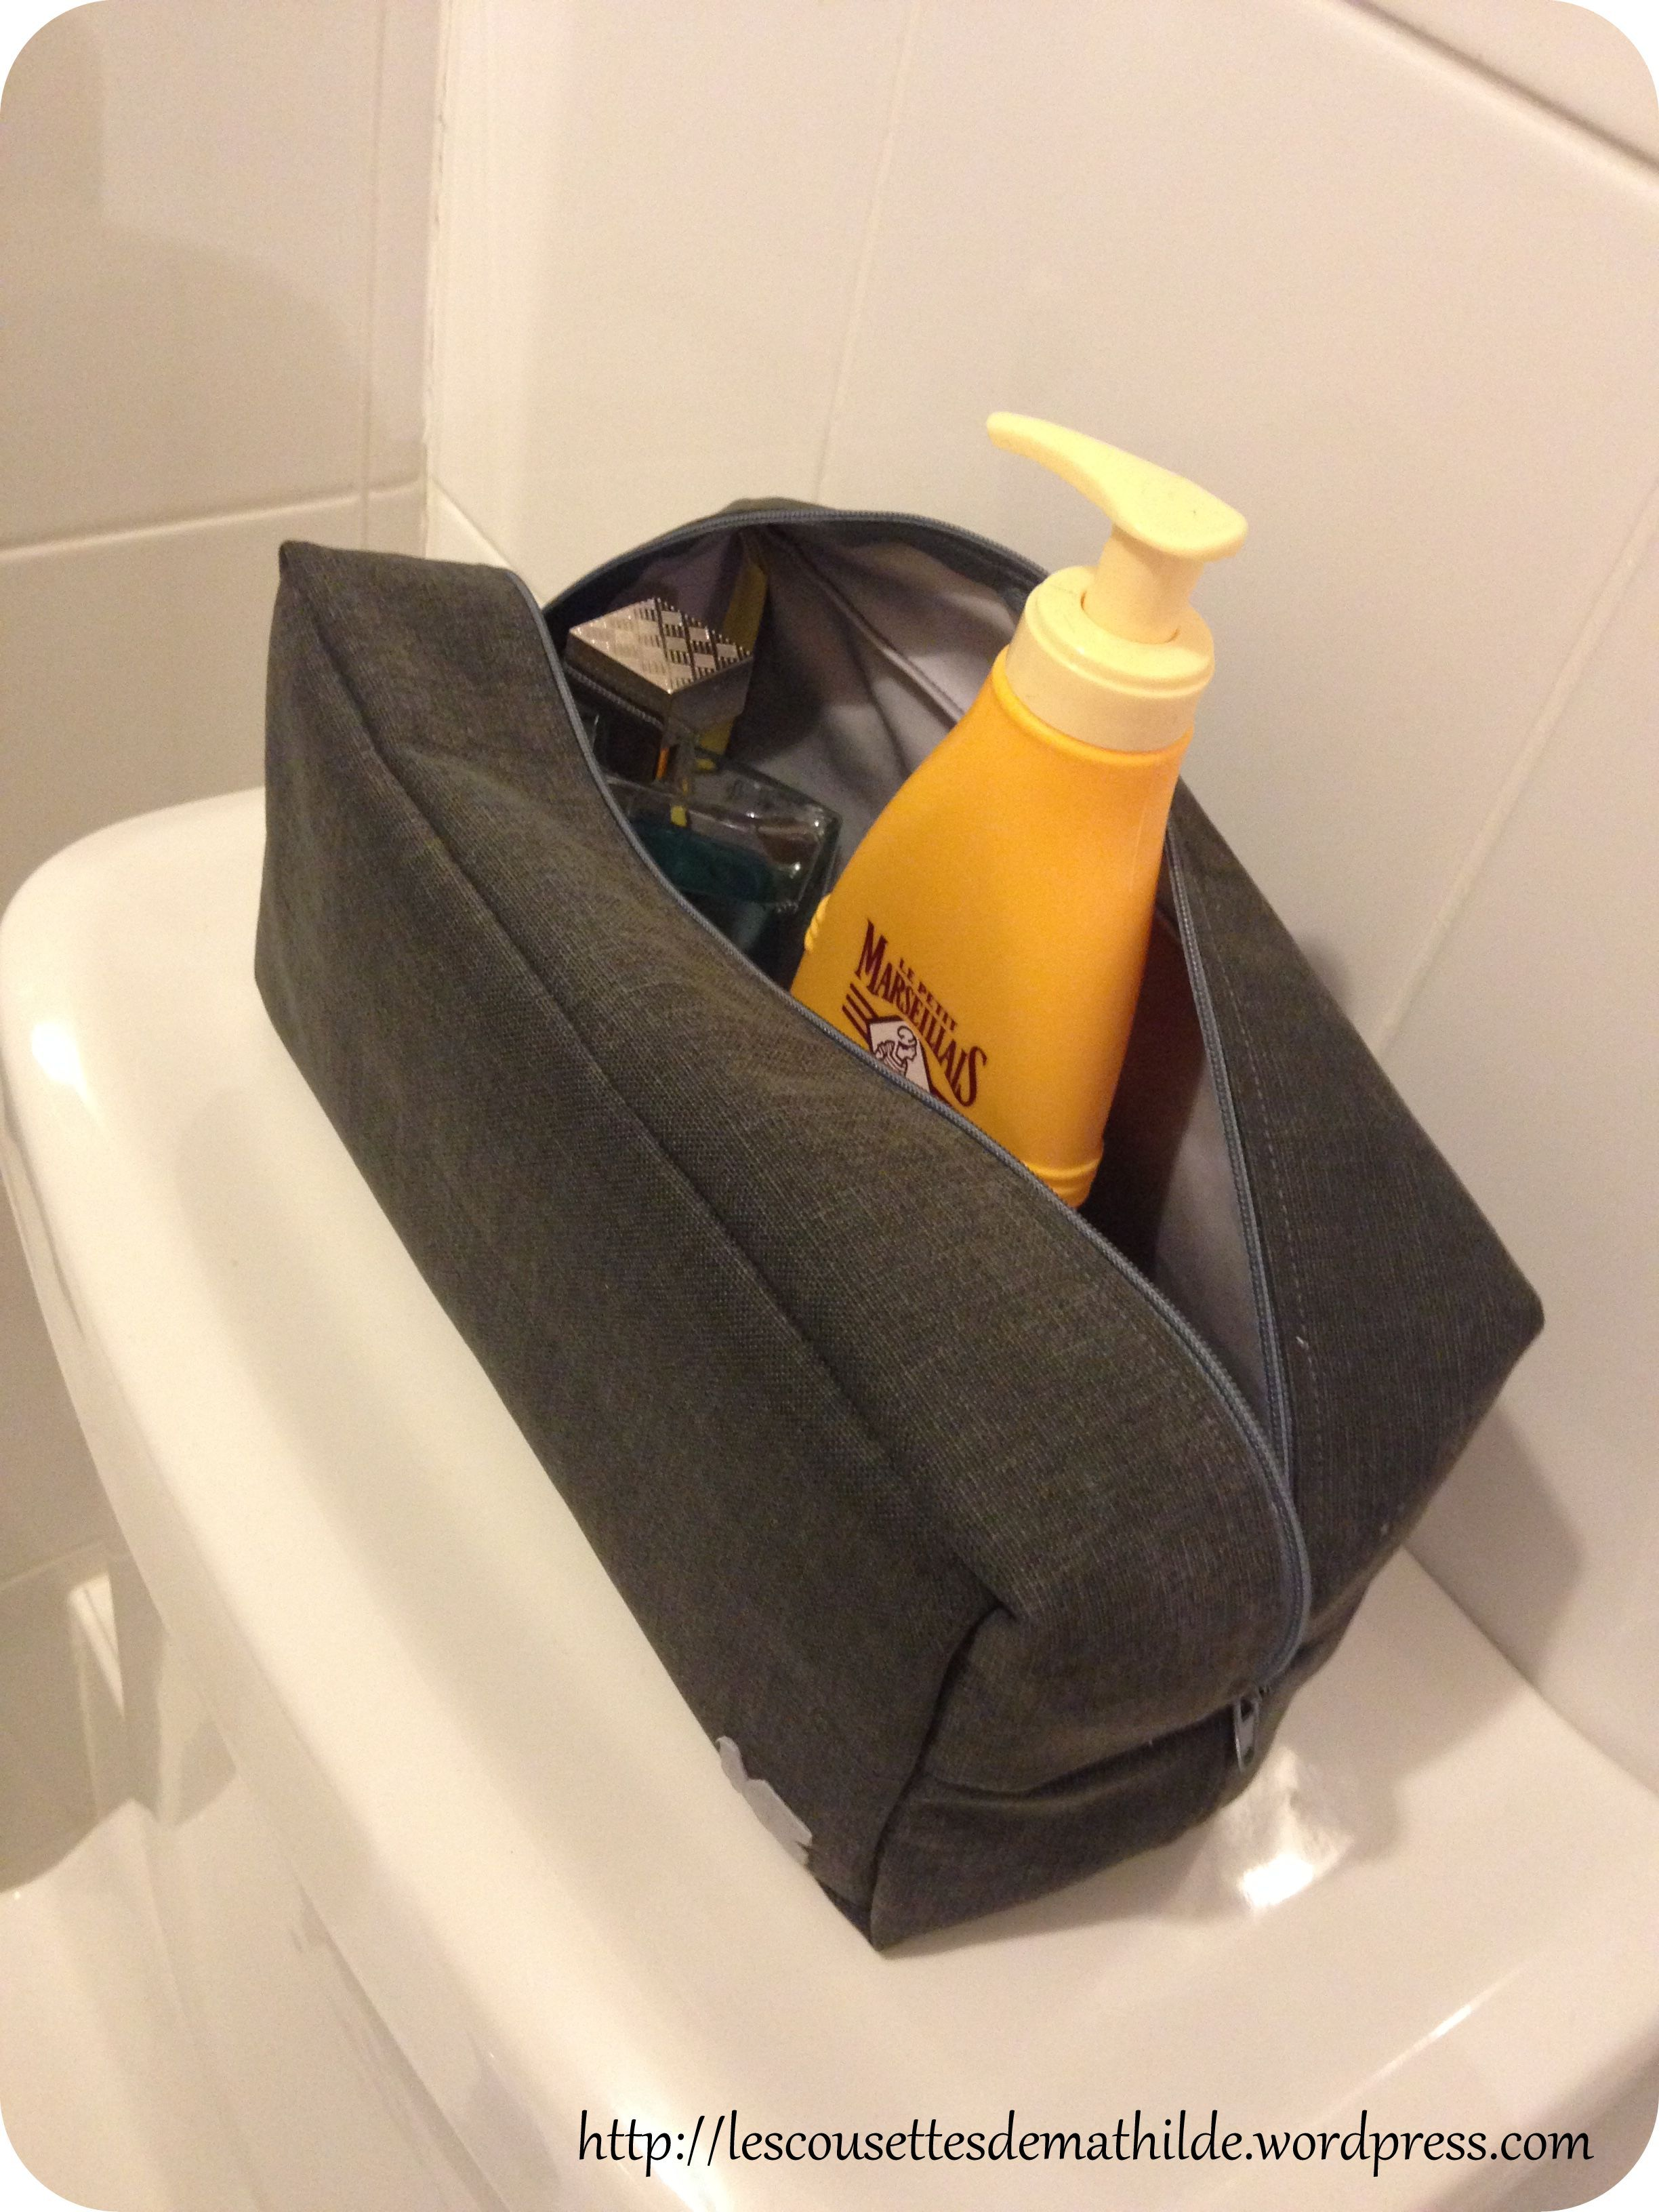 Photo De Toilette Tutoriel La Trousse De Toilette Pour Homme